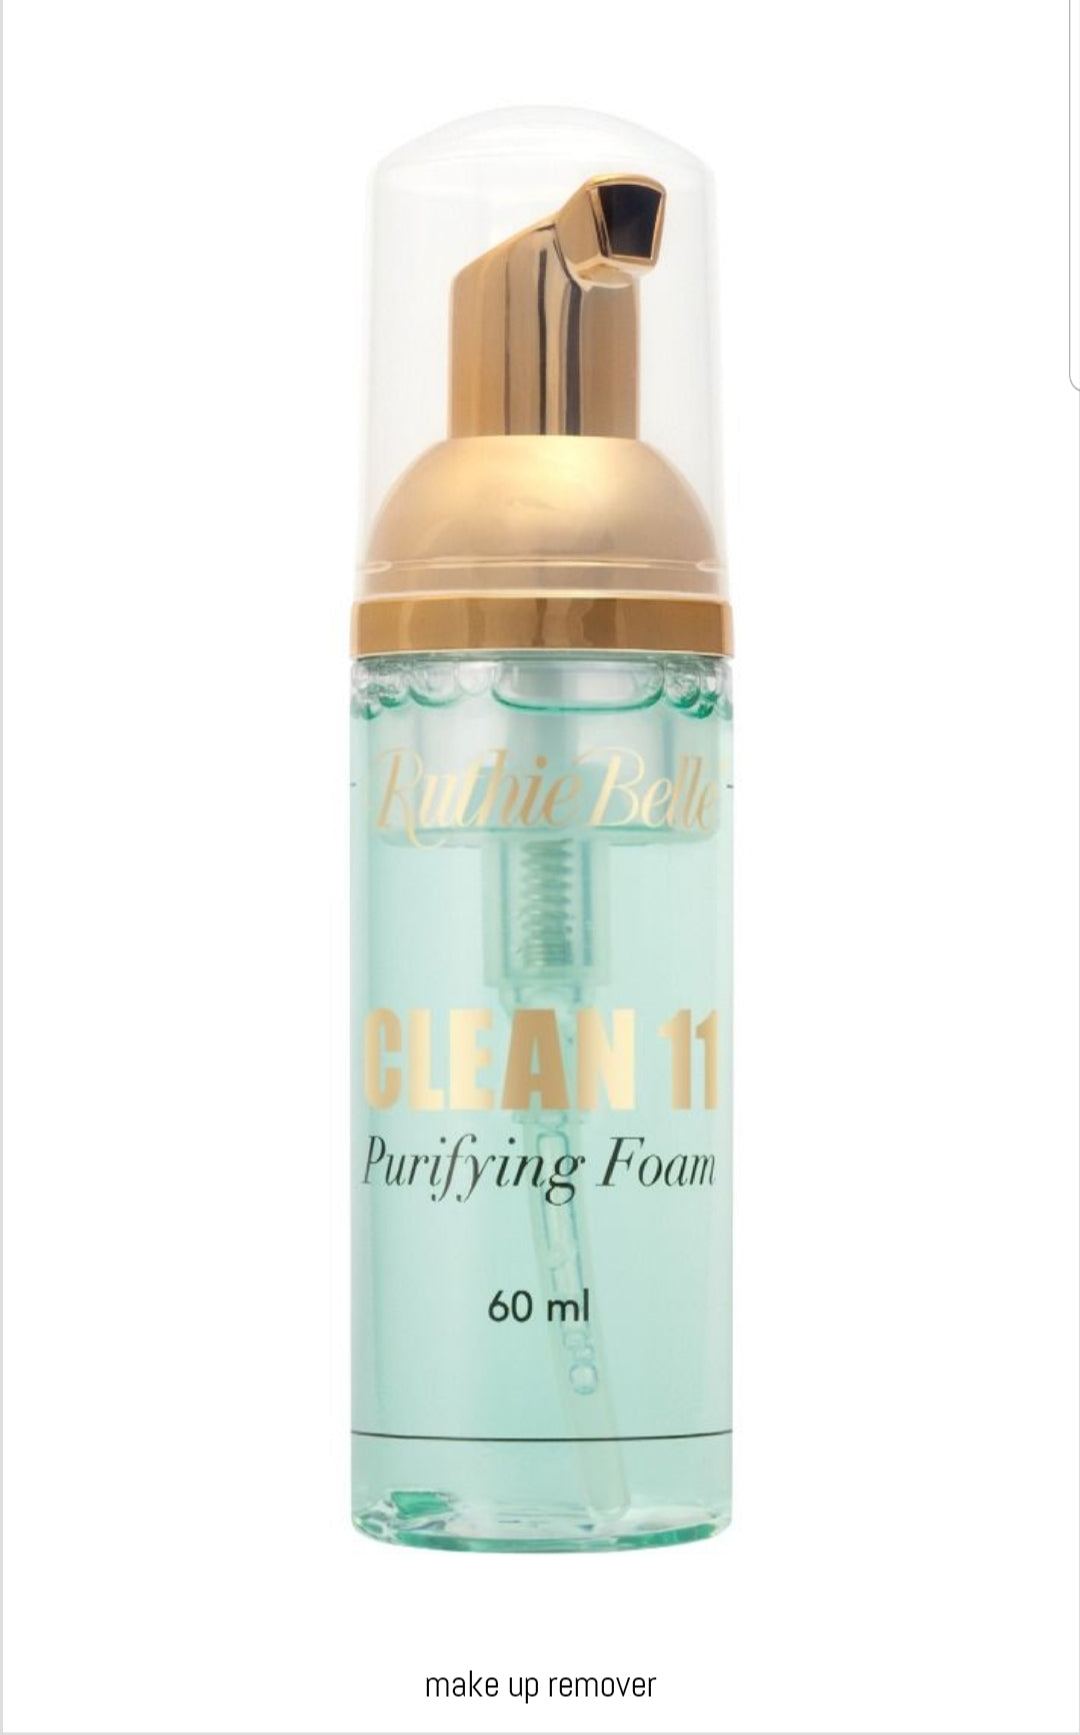 Clean 11 Purifying Foam 60ml